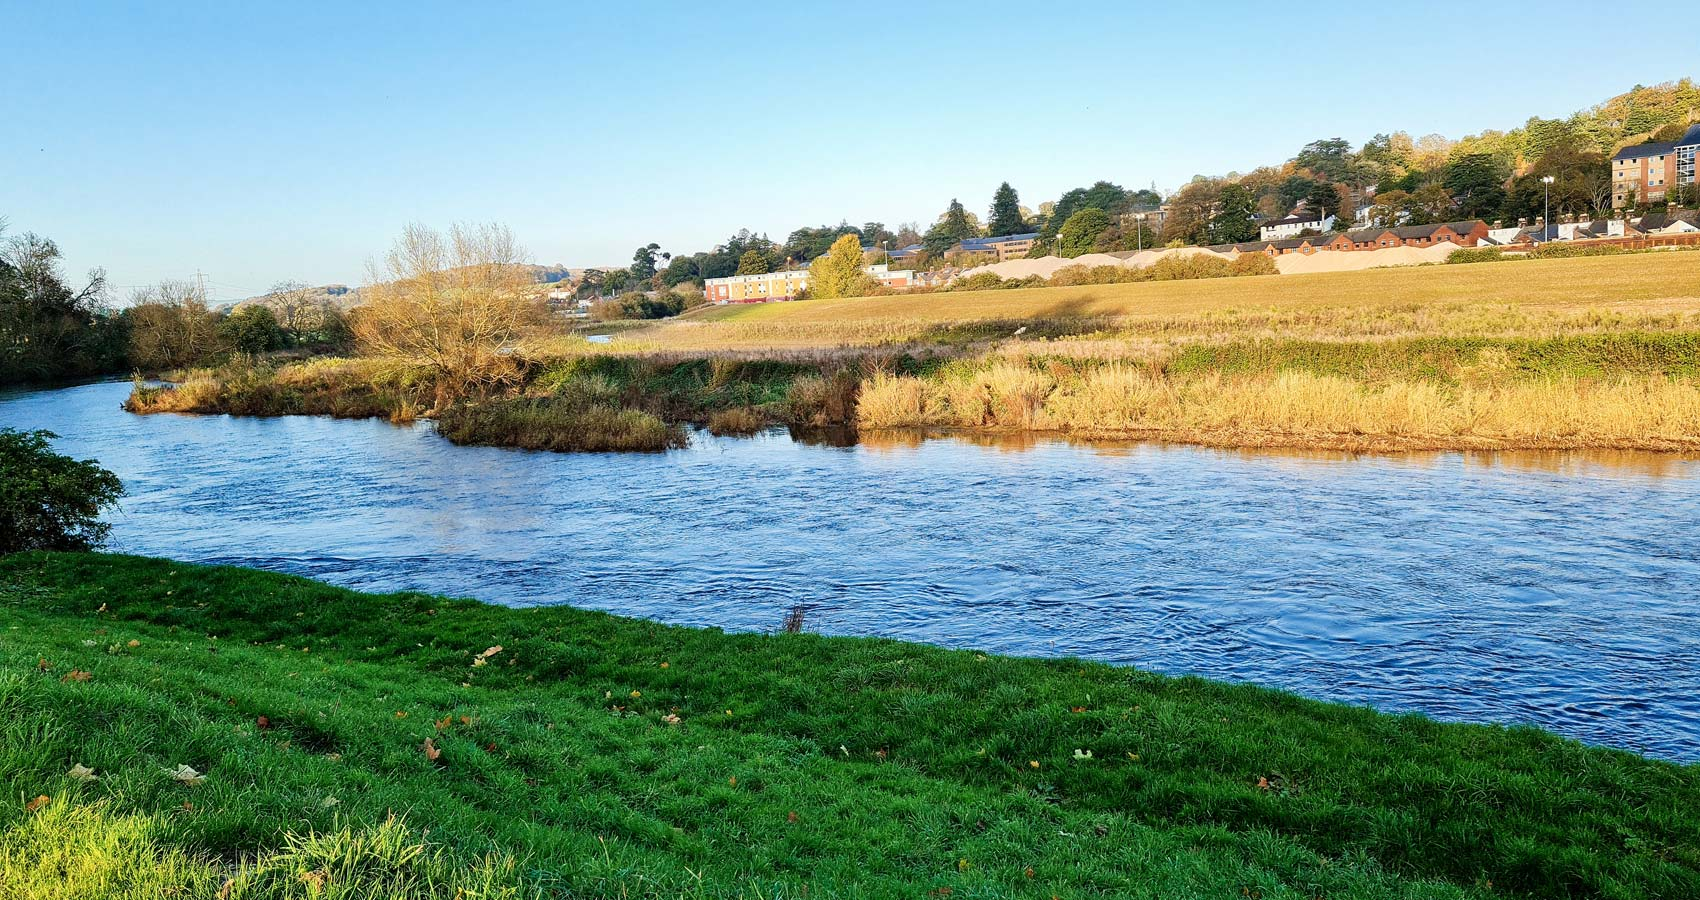 Picture This - The River, poetry by Jacqueline Mead at Spillwords.com